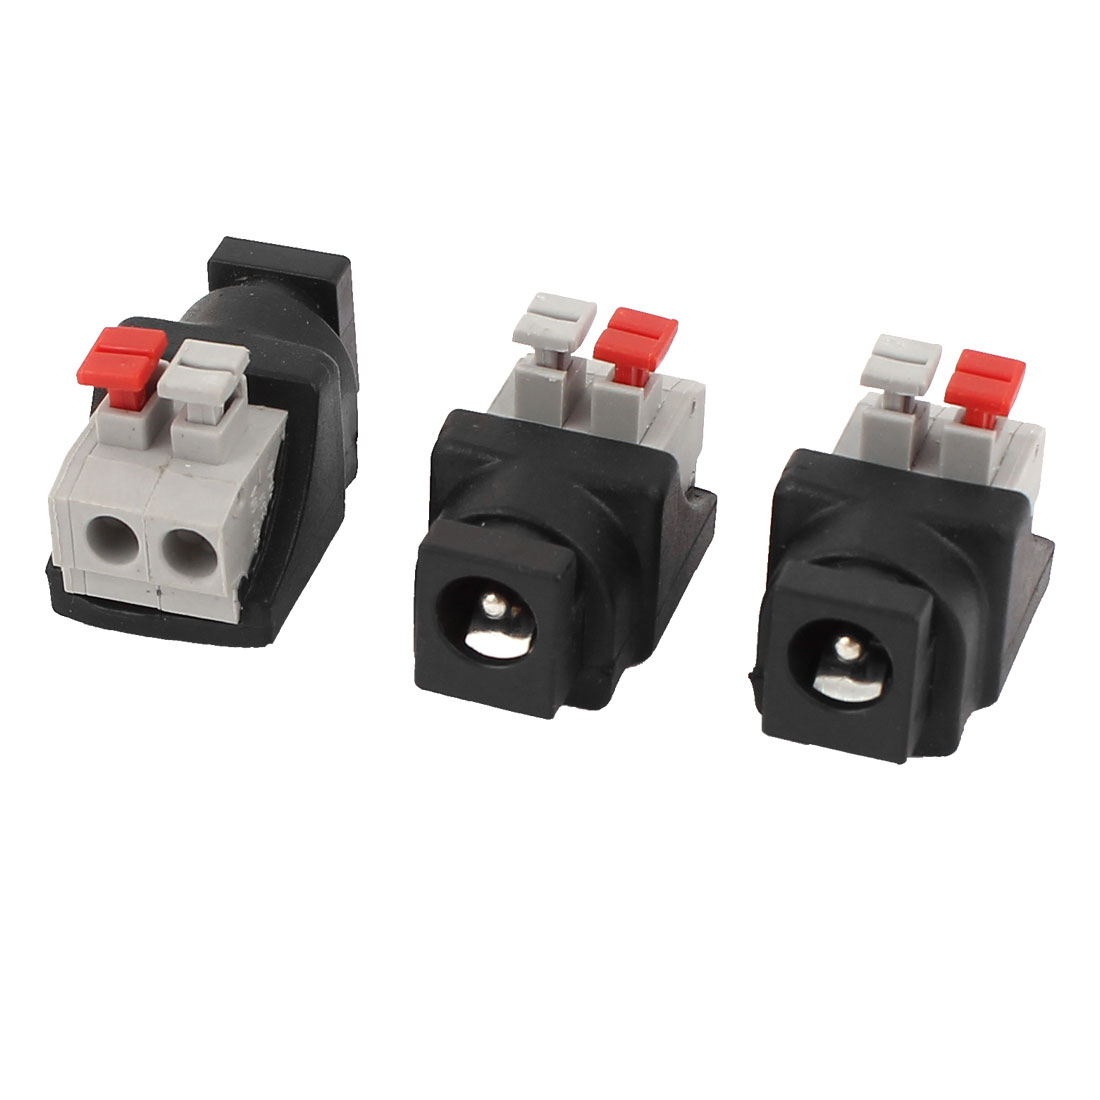 3 Pcs 5.5x2.1mm DC Power Female Spring Terminal Adapter Connector for CCTV Camera